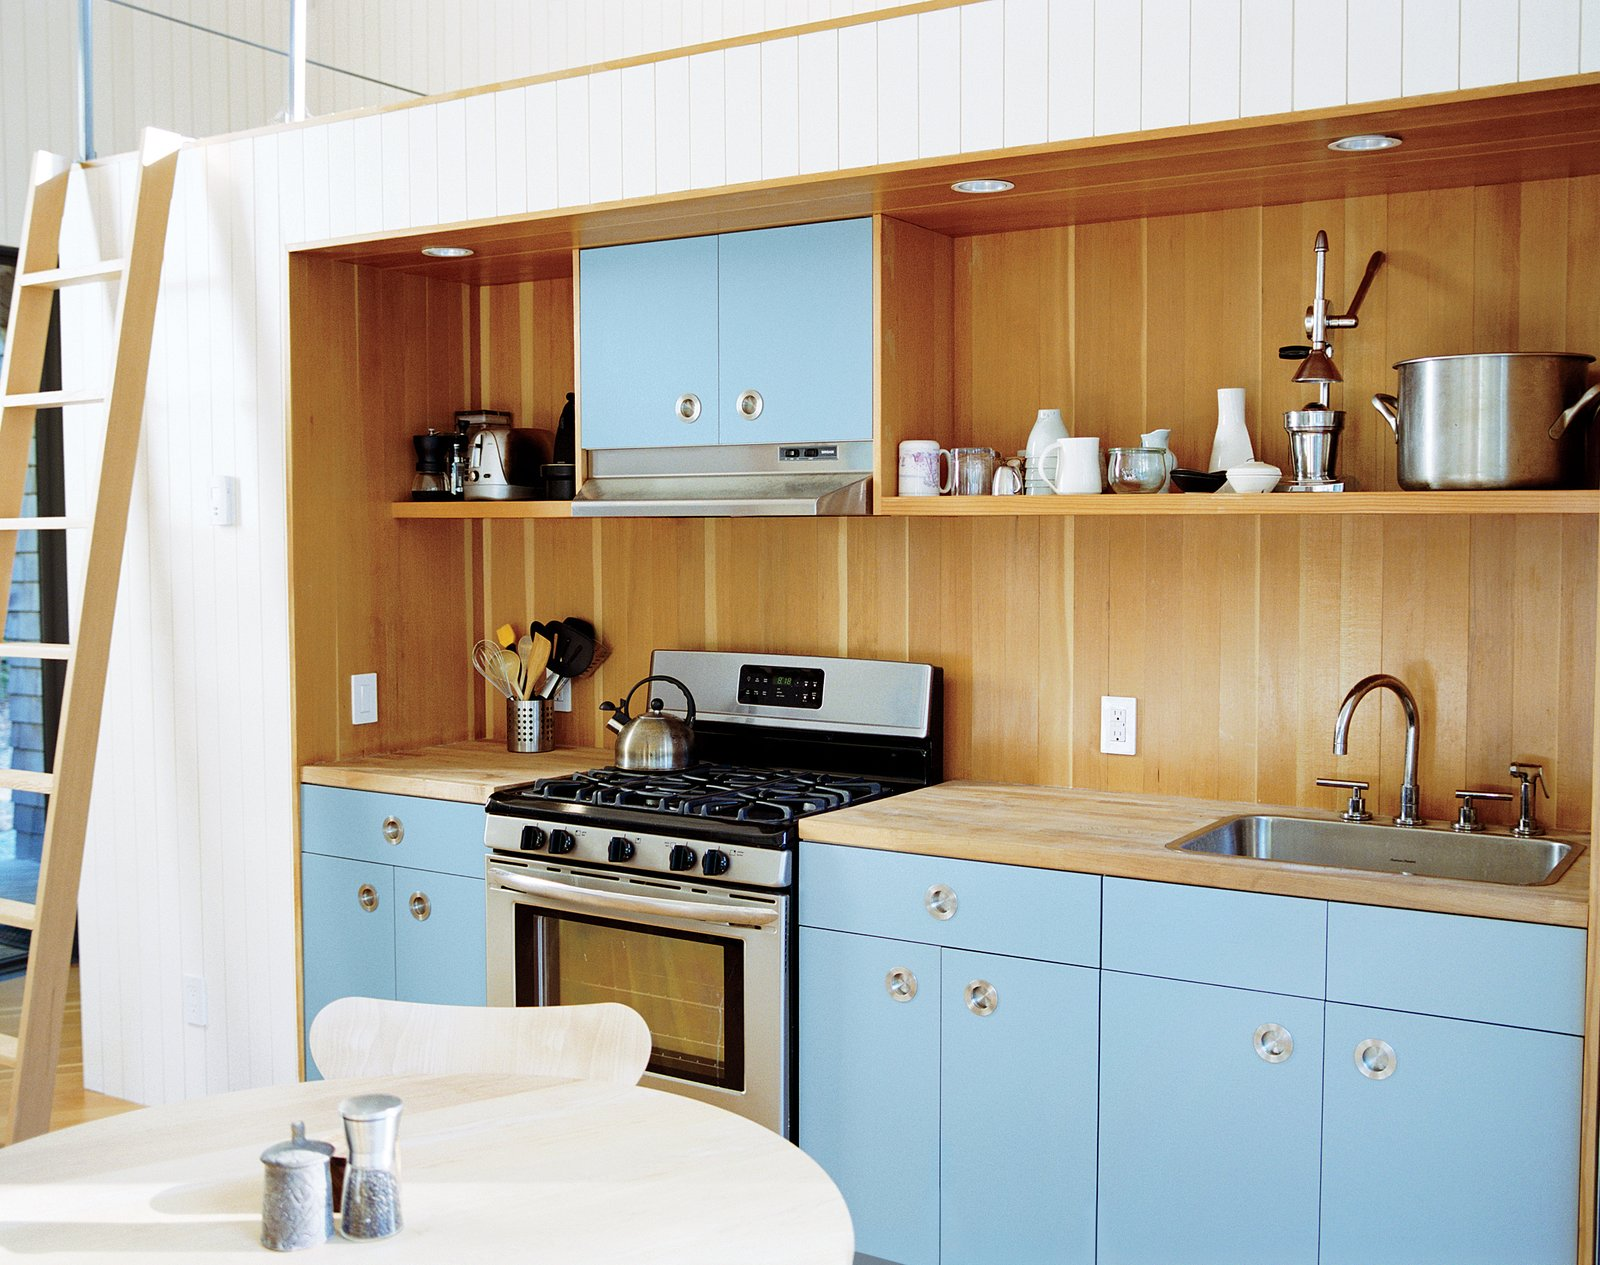 Kitchen, Colorful, Wood, Range, Wood, Recessed, Range Hood, Light Hardwood, Wood, and Drop In Give your IKEA furniture a quick facelift with these DIY tips—guaranteed to transform your basic pieces into custom, eye-catching furniture in less than an hour, tops.  Best Kitchen Recessed Drop In Colorful Photos from This Tiny New England Cottage Is a No-Frills Weekend Hideaway